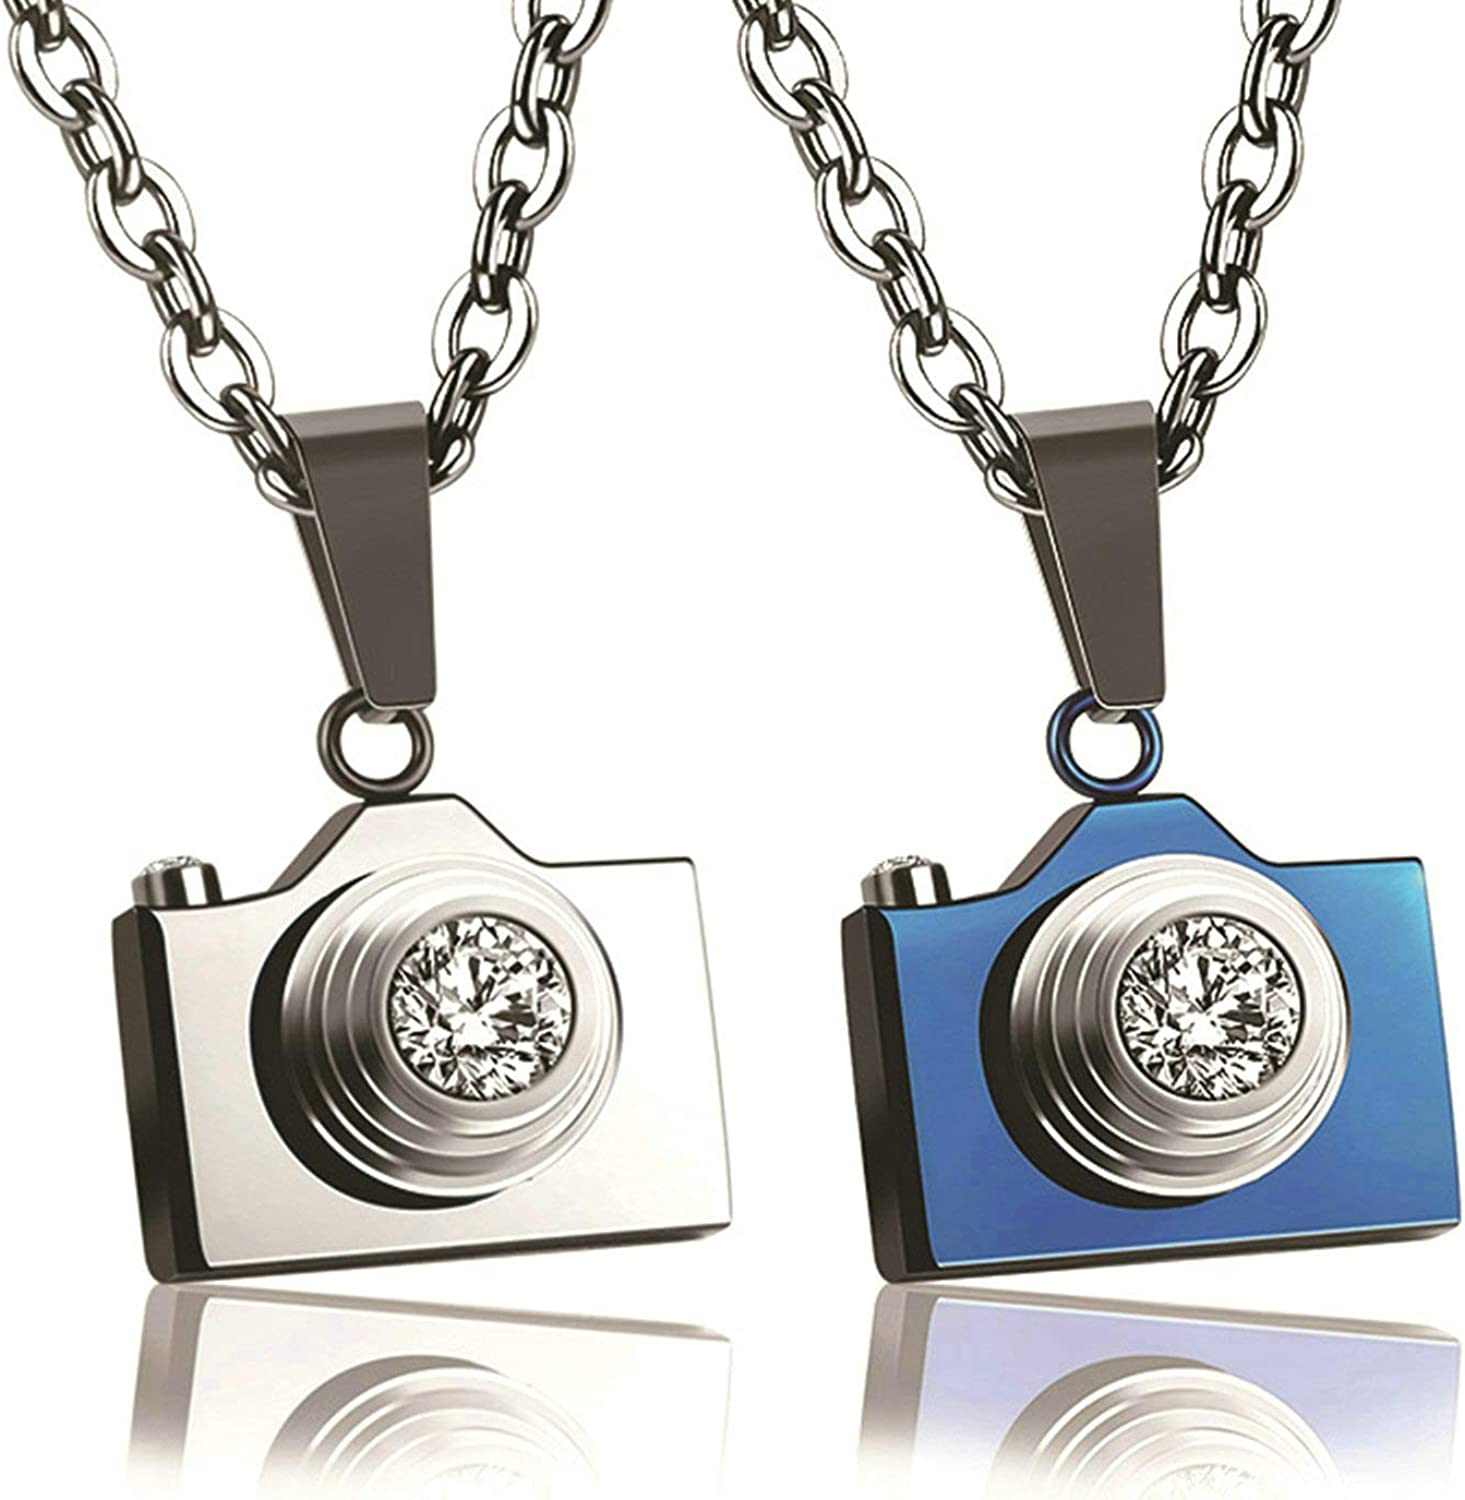 Aooaz Personalized Necklace Stainless Steel Anniversary Necklace Camera Shape with Crystal Necklace for Him and Her Silver Blue